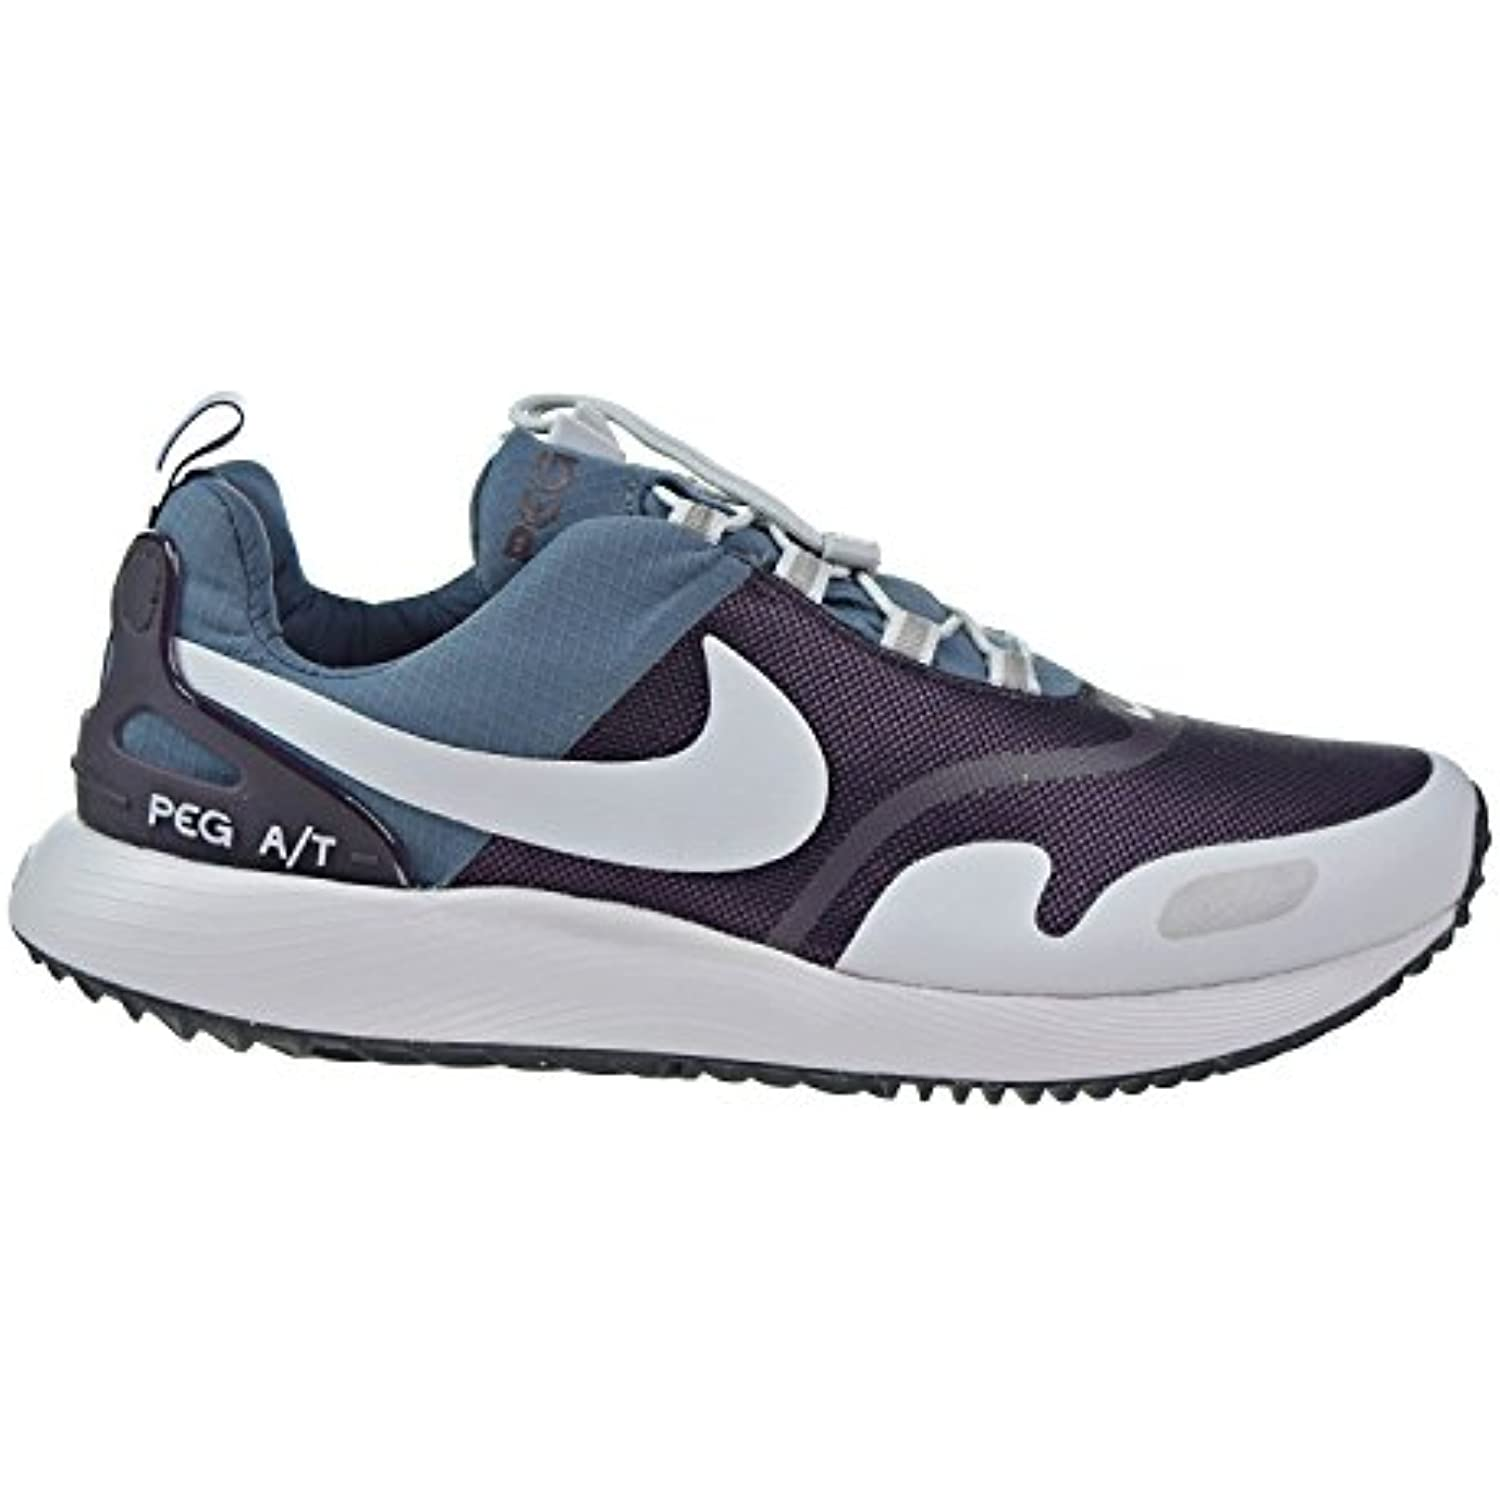 new product 2ee42 0a9dd NIKE Chaussure Air Pegasus A t Winter Blanc B00CA7V2H6 B00CA7V2H6  B00CA7V2H6 - 1cae8d